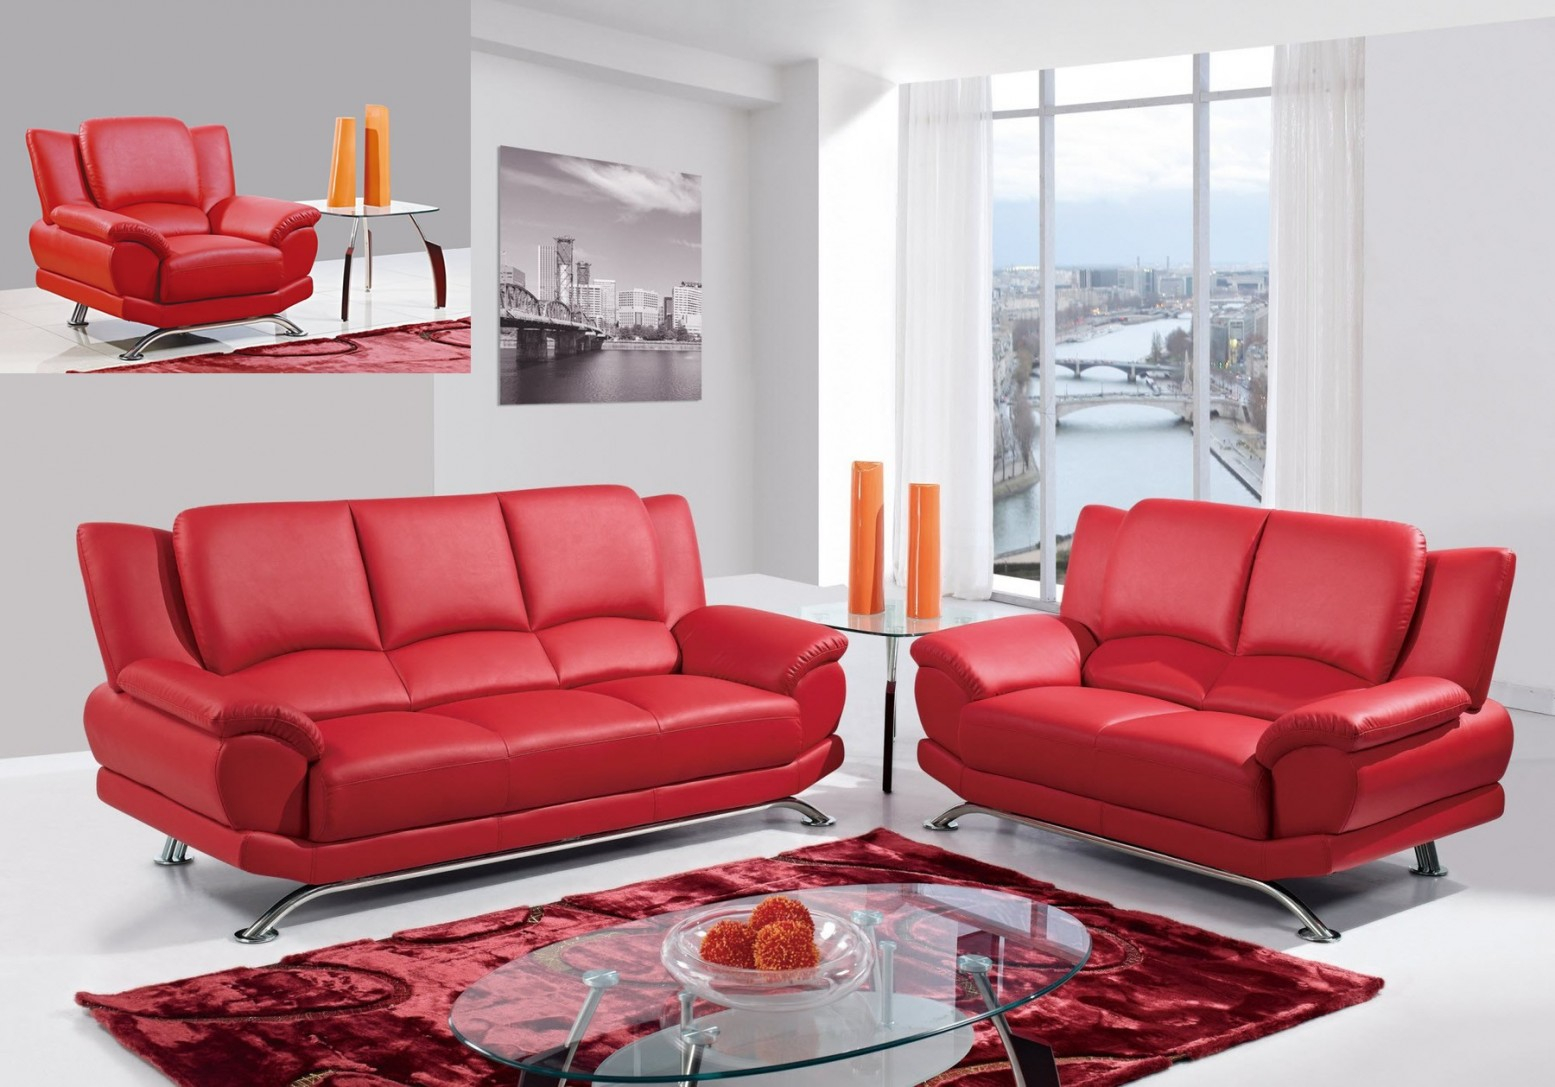 U9908 3 Piece Living Room Set Red Buy Online At Best Price intended for 10 Genius Designs of How to Make Red Living Room Sets For Sale